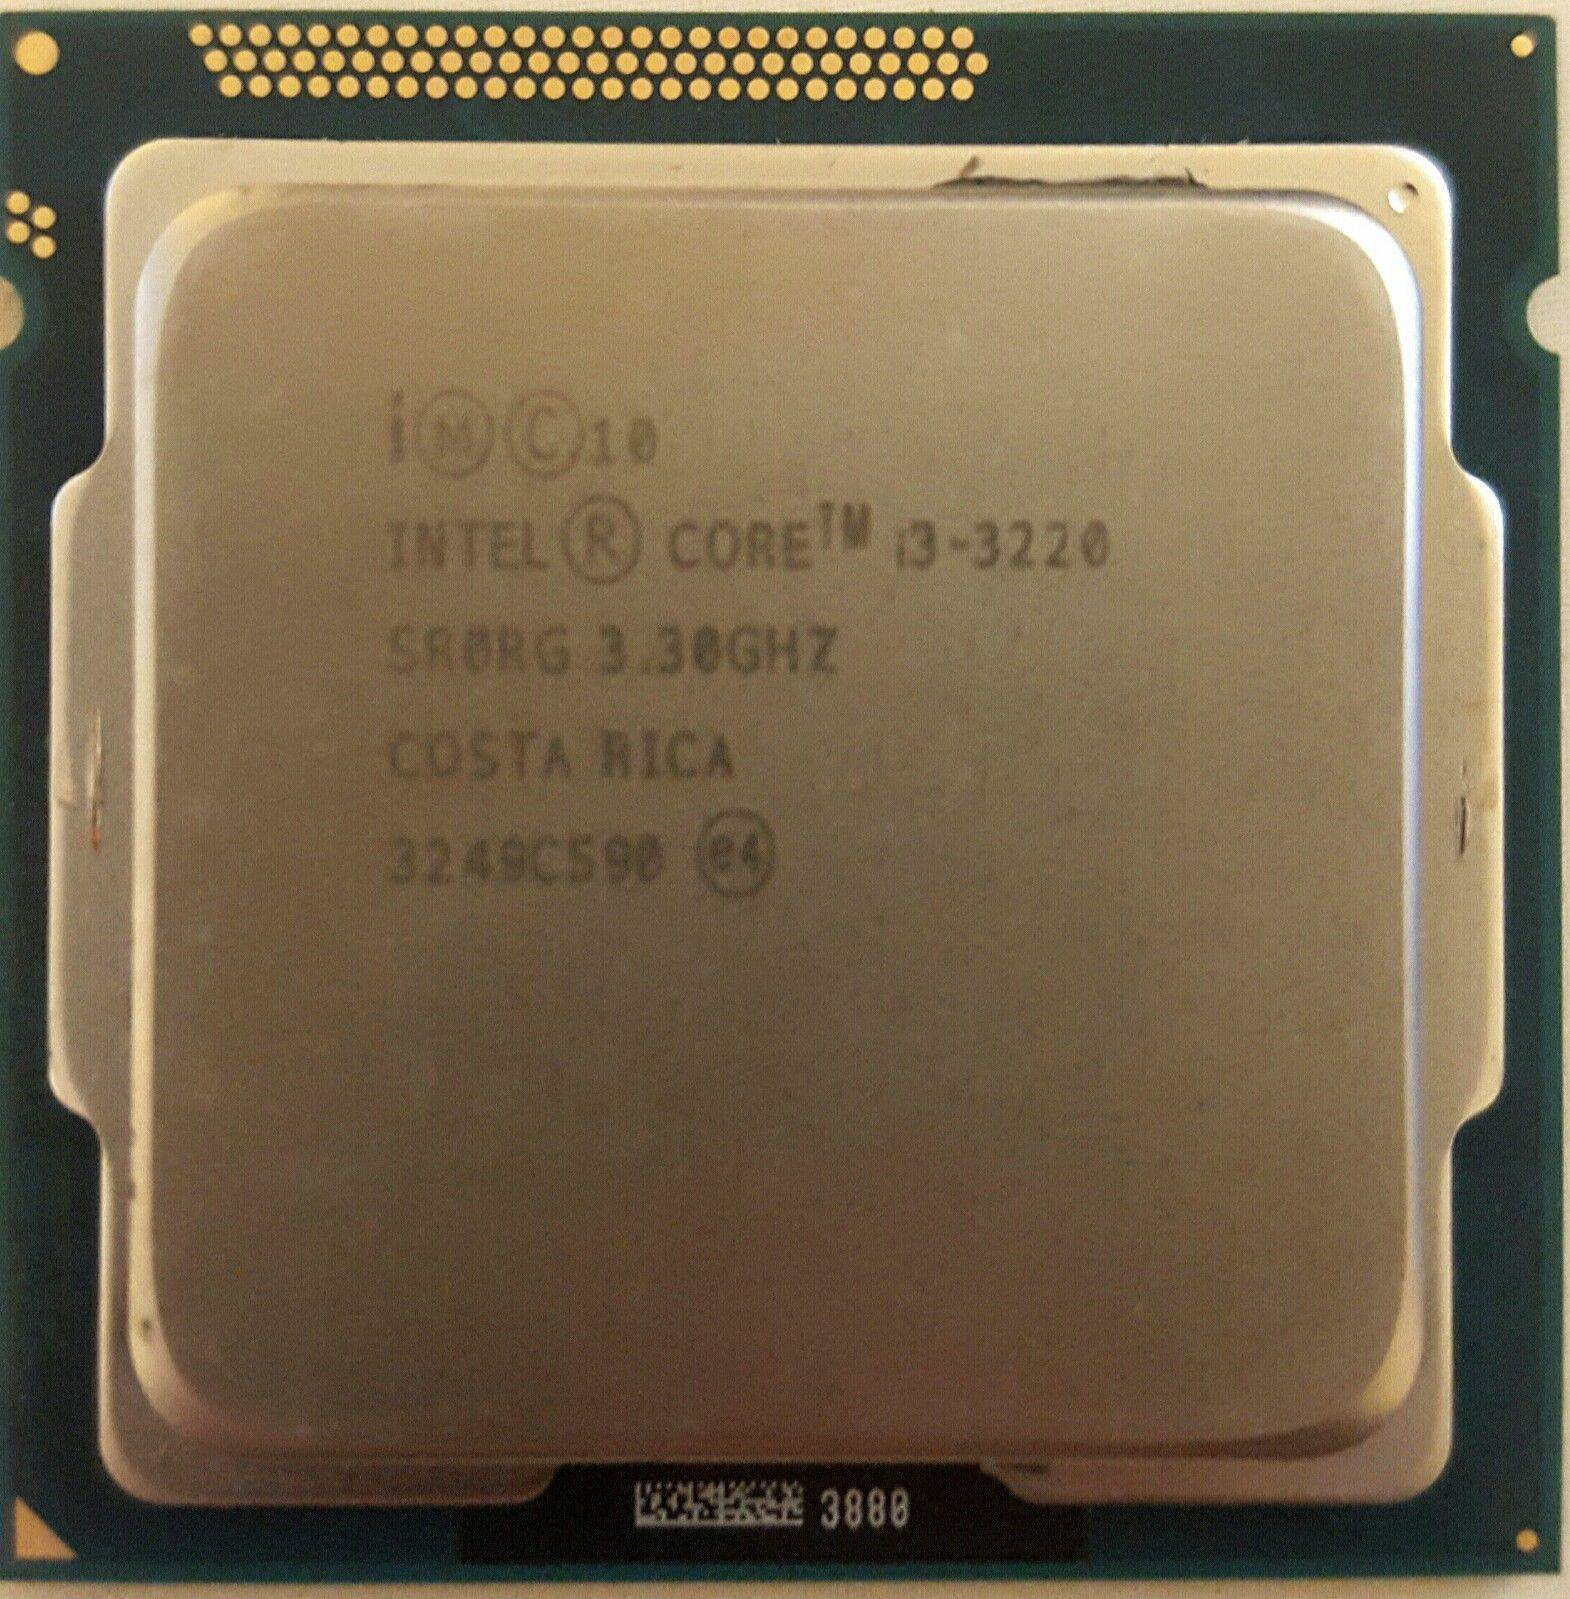 Intel® Core™ i3-3220 Processor CPU 3.30GHz 3Mb SR0RG for Desktop